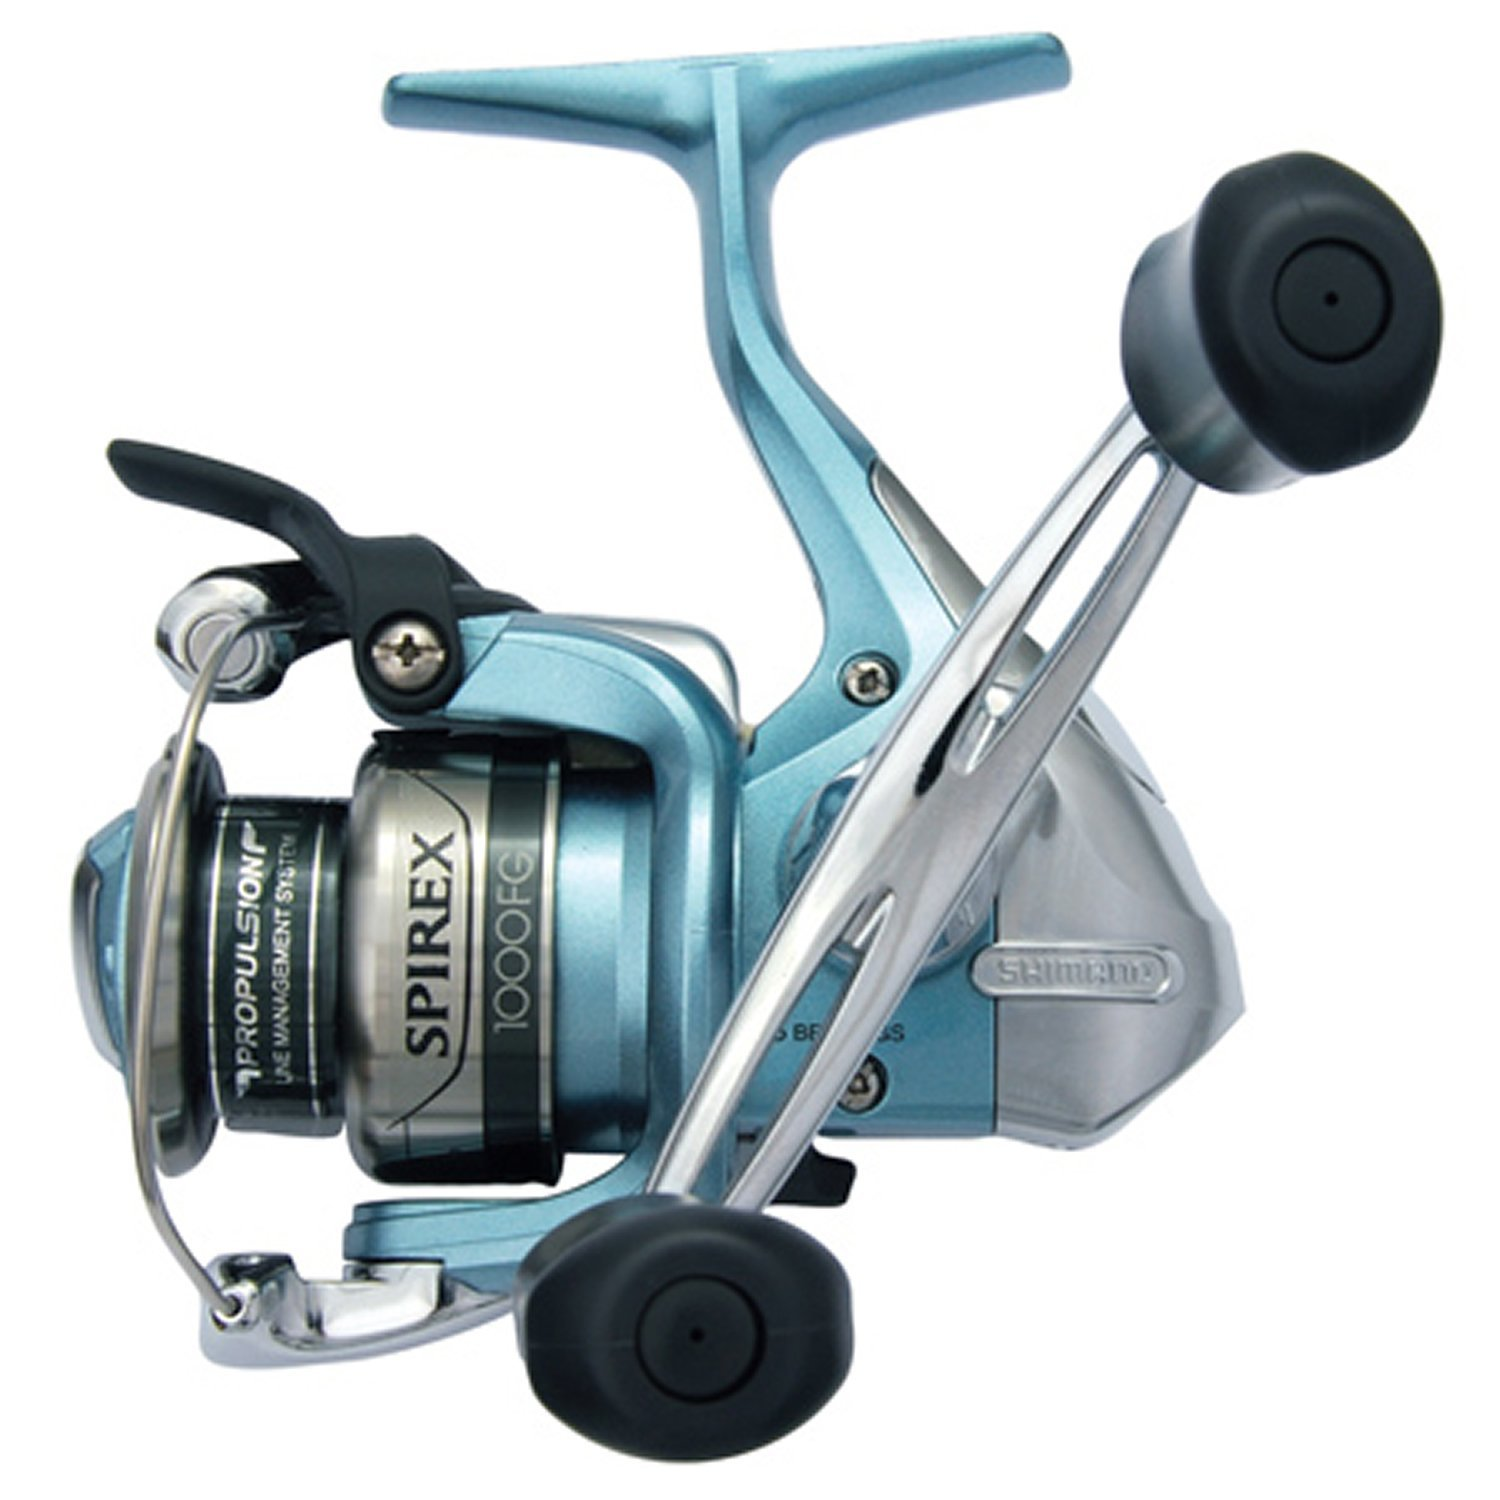 Ultralight Spinning Reels Review